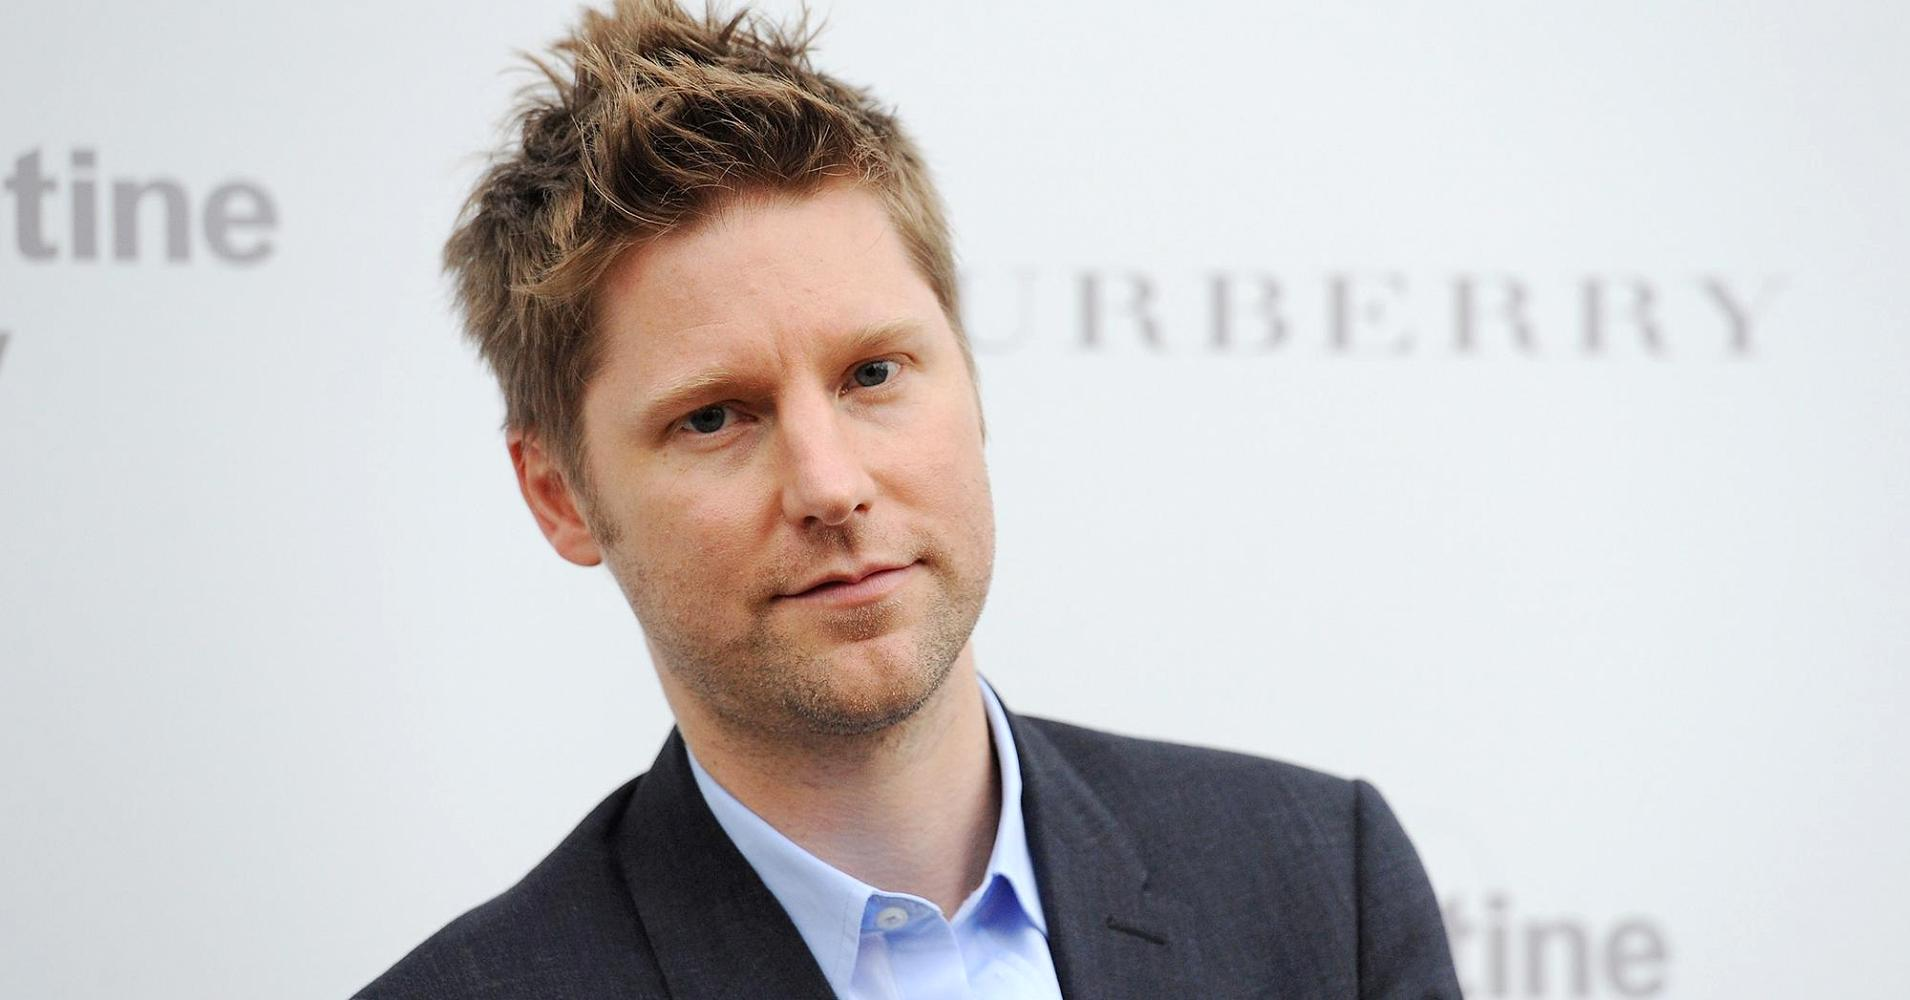 Christopher Bailey Set to Depart From Burberry